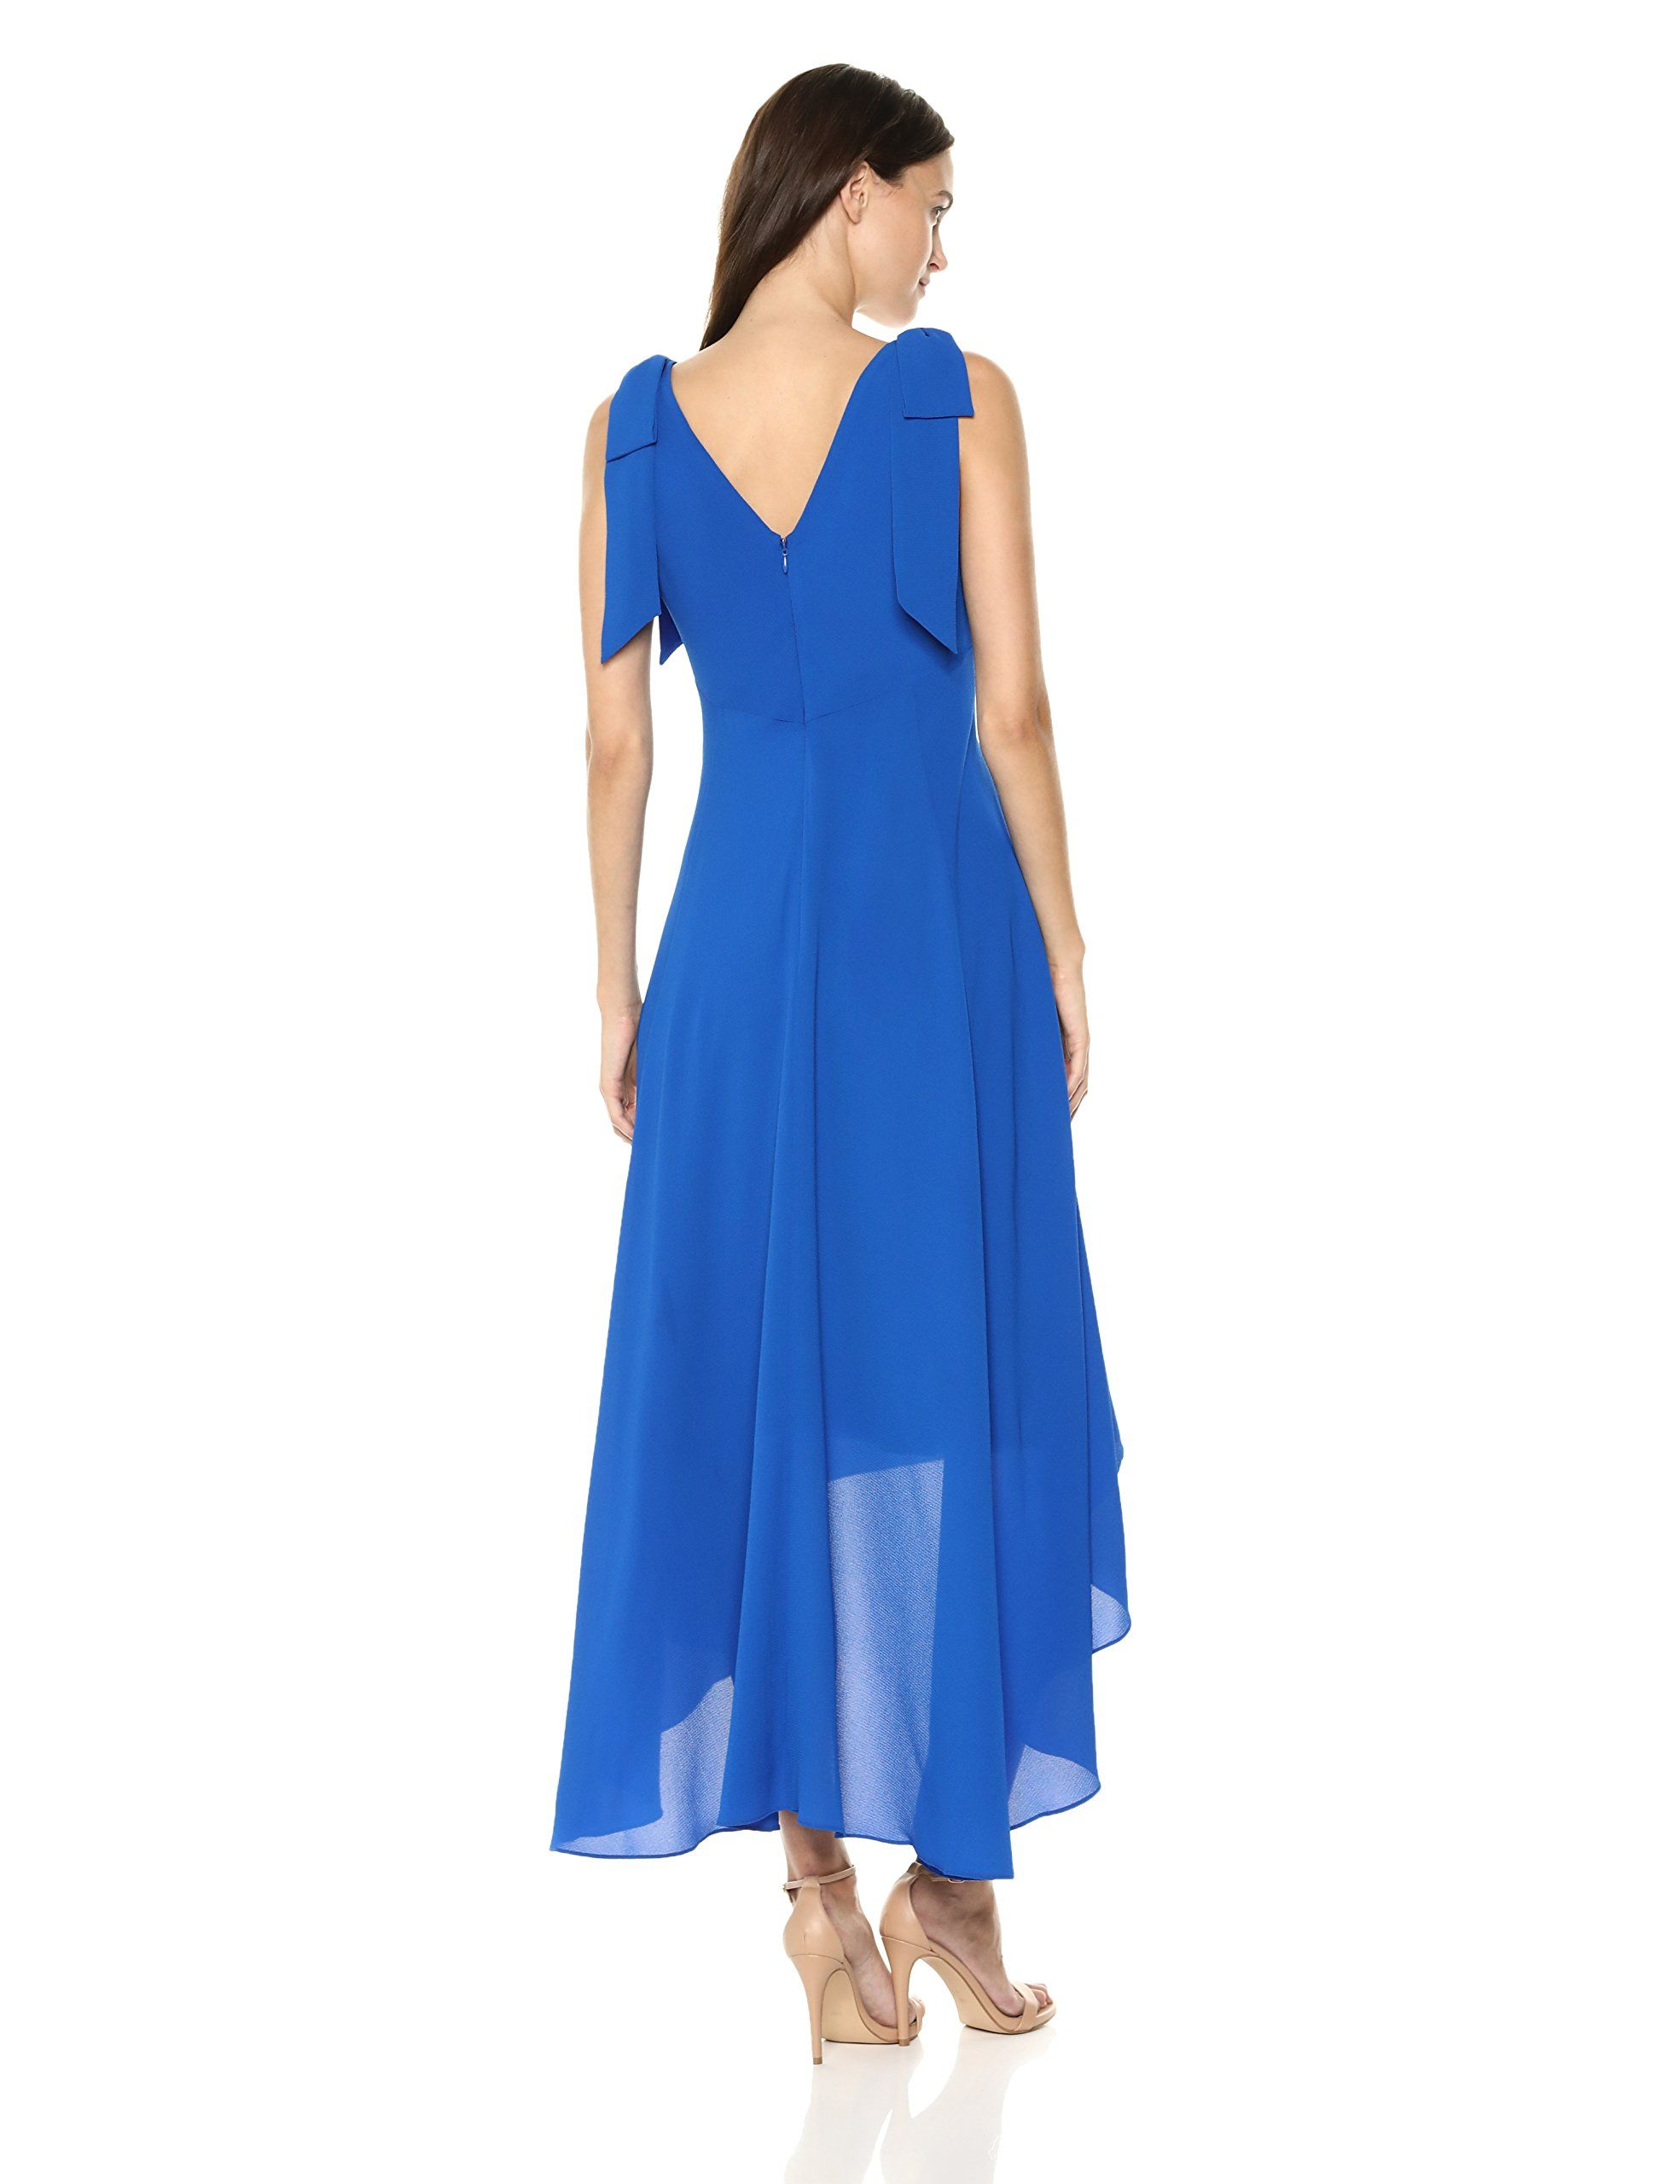 815b62df Nicole Miller New York Womens Sleeveless vNeck High Low Dress with Shoulder  Bows Royal 6 *** You can find out more details at the link of the ...